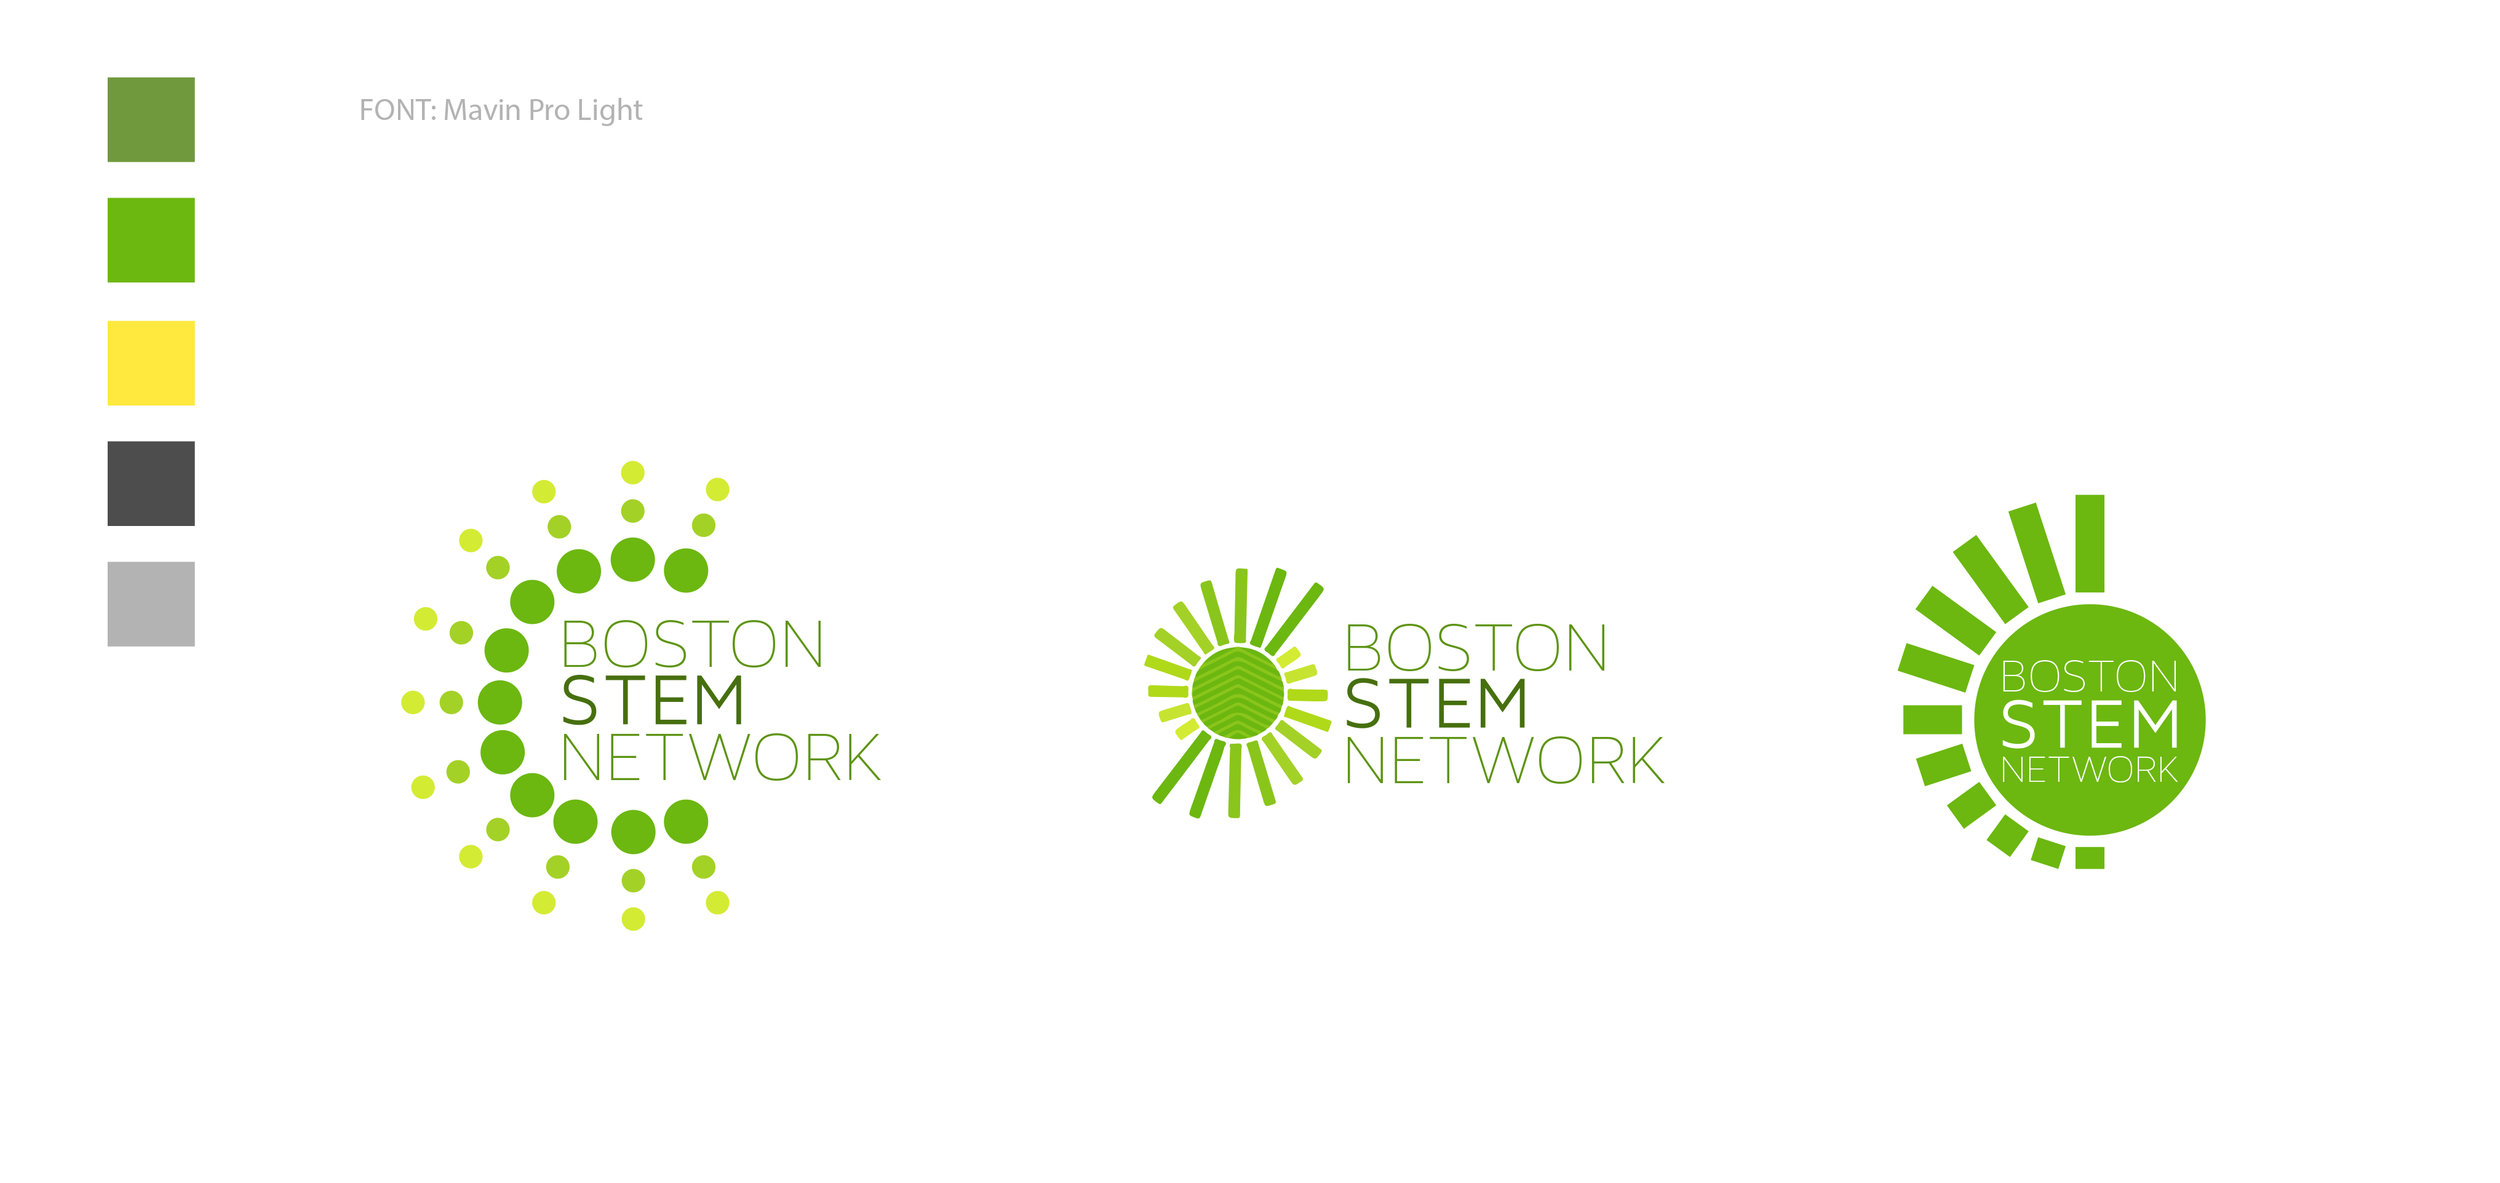 BostonStem.jpg